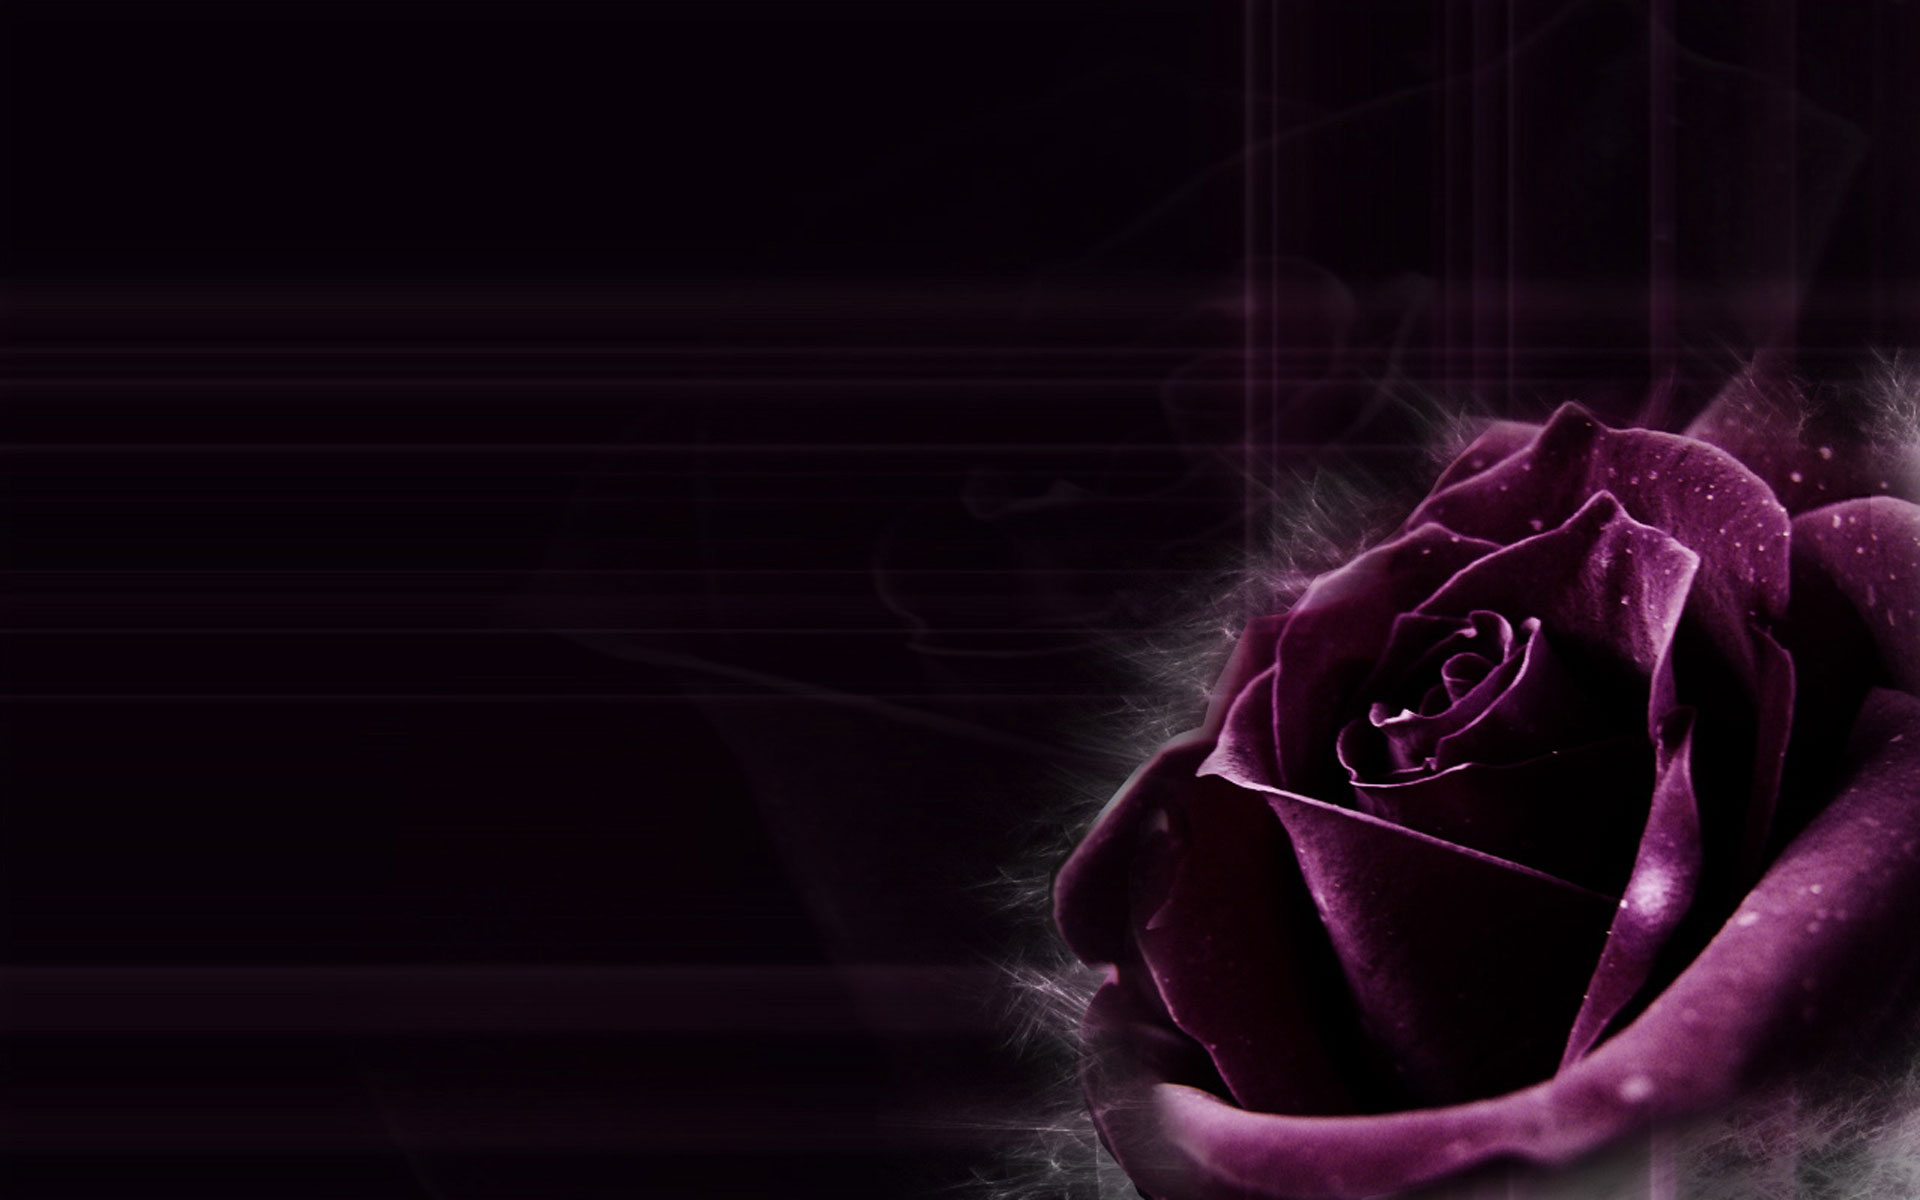 purple roses wallpaper 15 hd wallpaper hdflowerwallpapercom